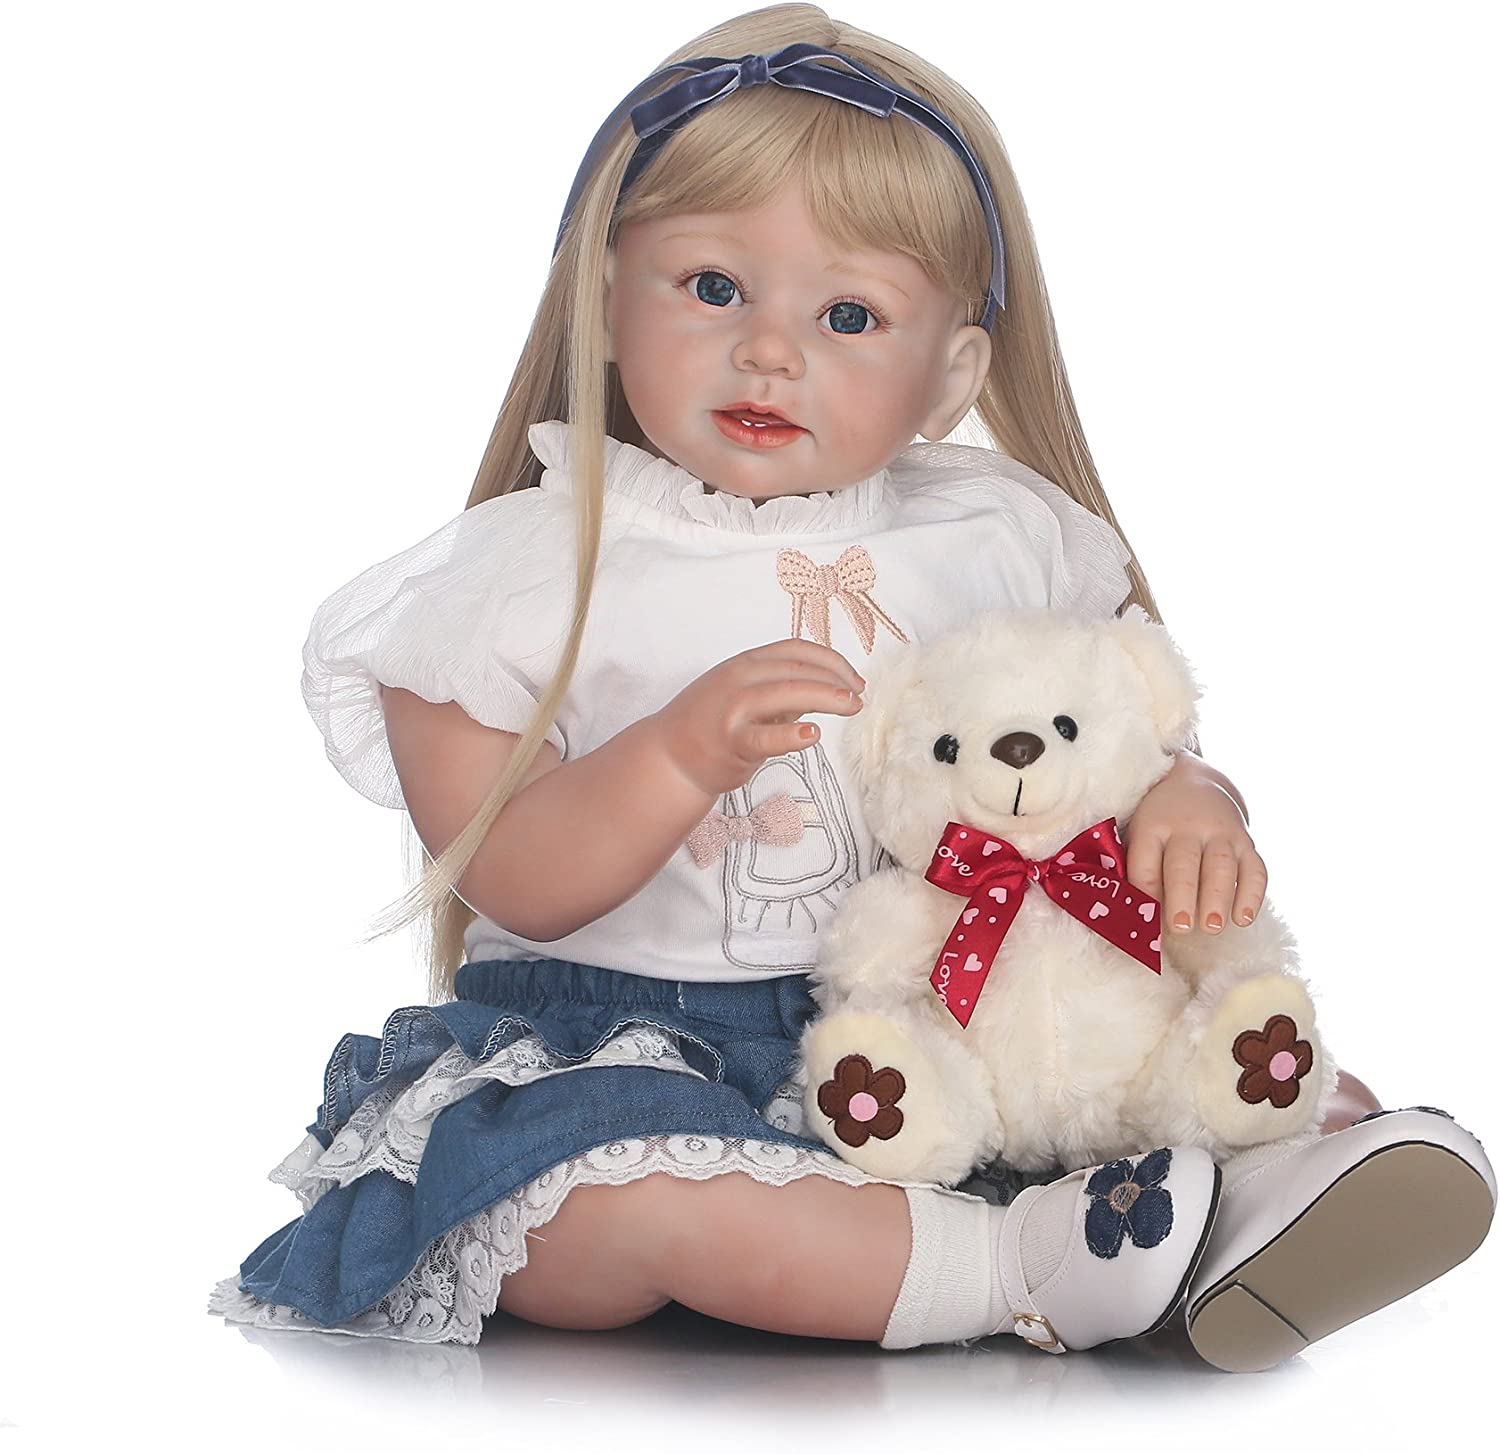 Reborn Toddler Dolls Girls Weighted Toddl Regular discount Realistic online shopping Inch Body 28